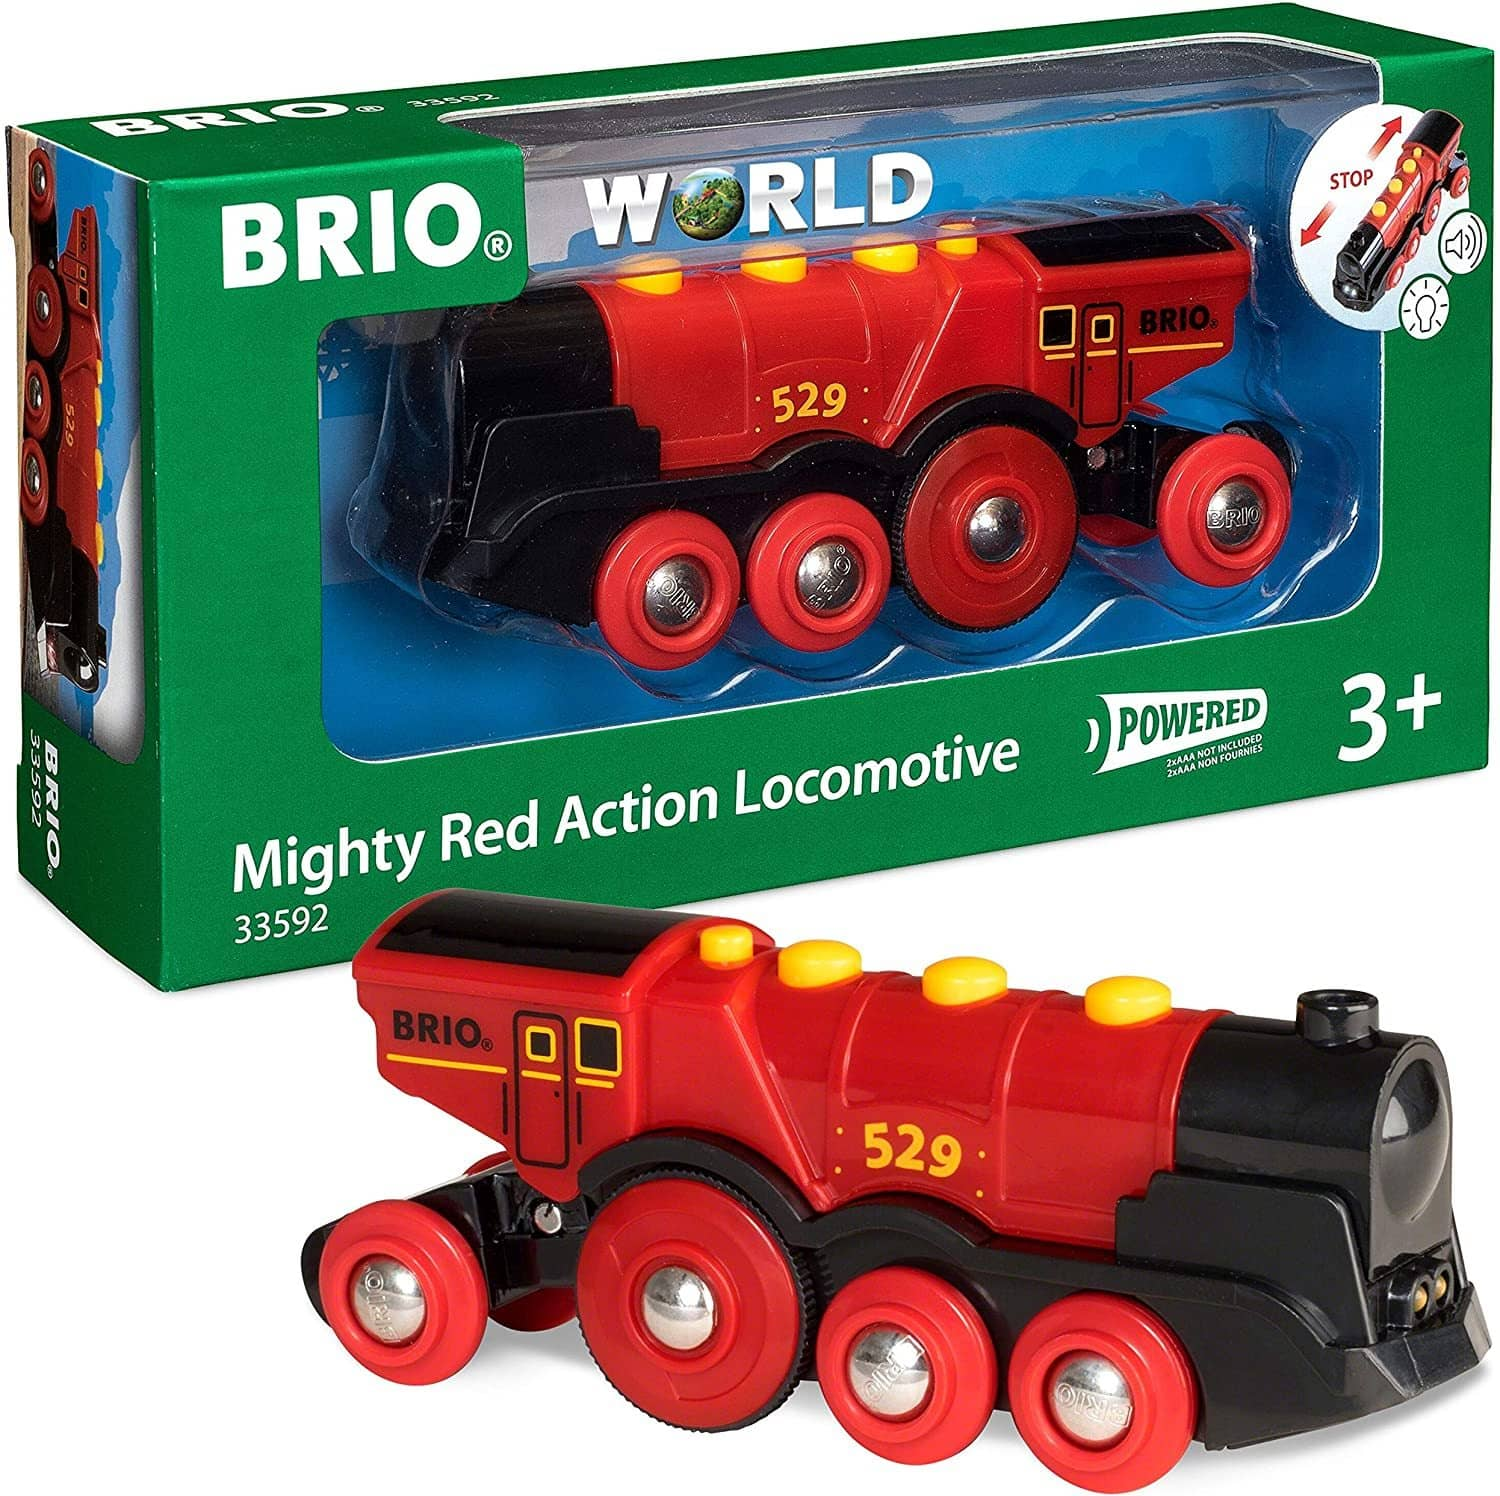 Brio World 33592 Mighty Red Action Locomotive | Battery Operated Toy Train With Light And Sound Effects For Kids Age 3 And Up-Kidding Around NYC